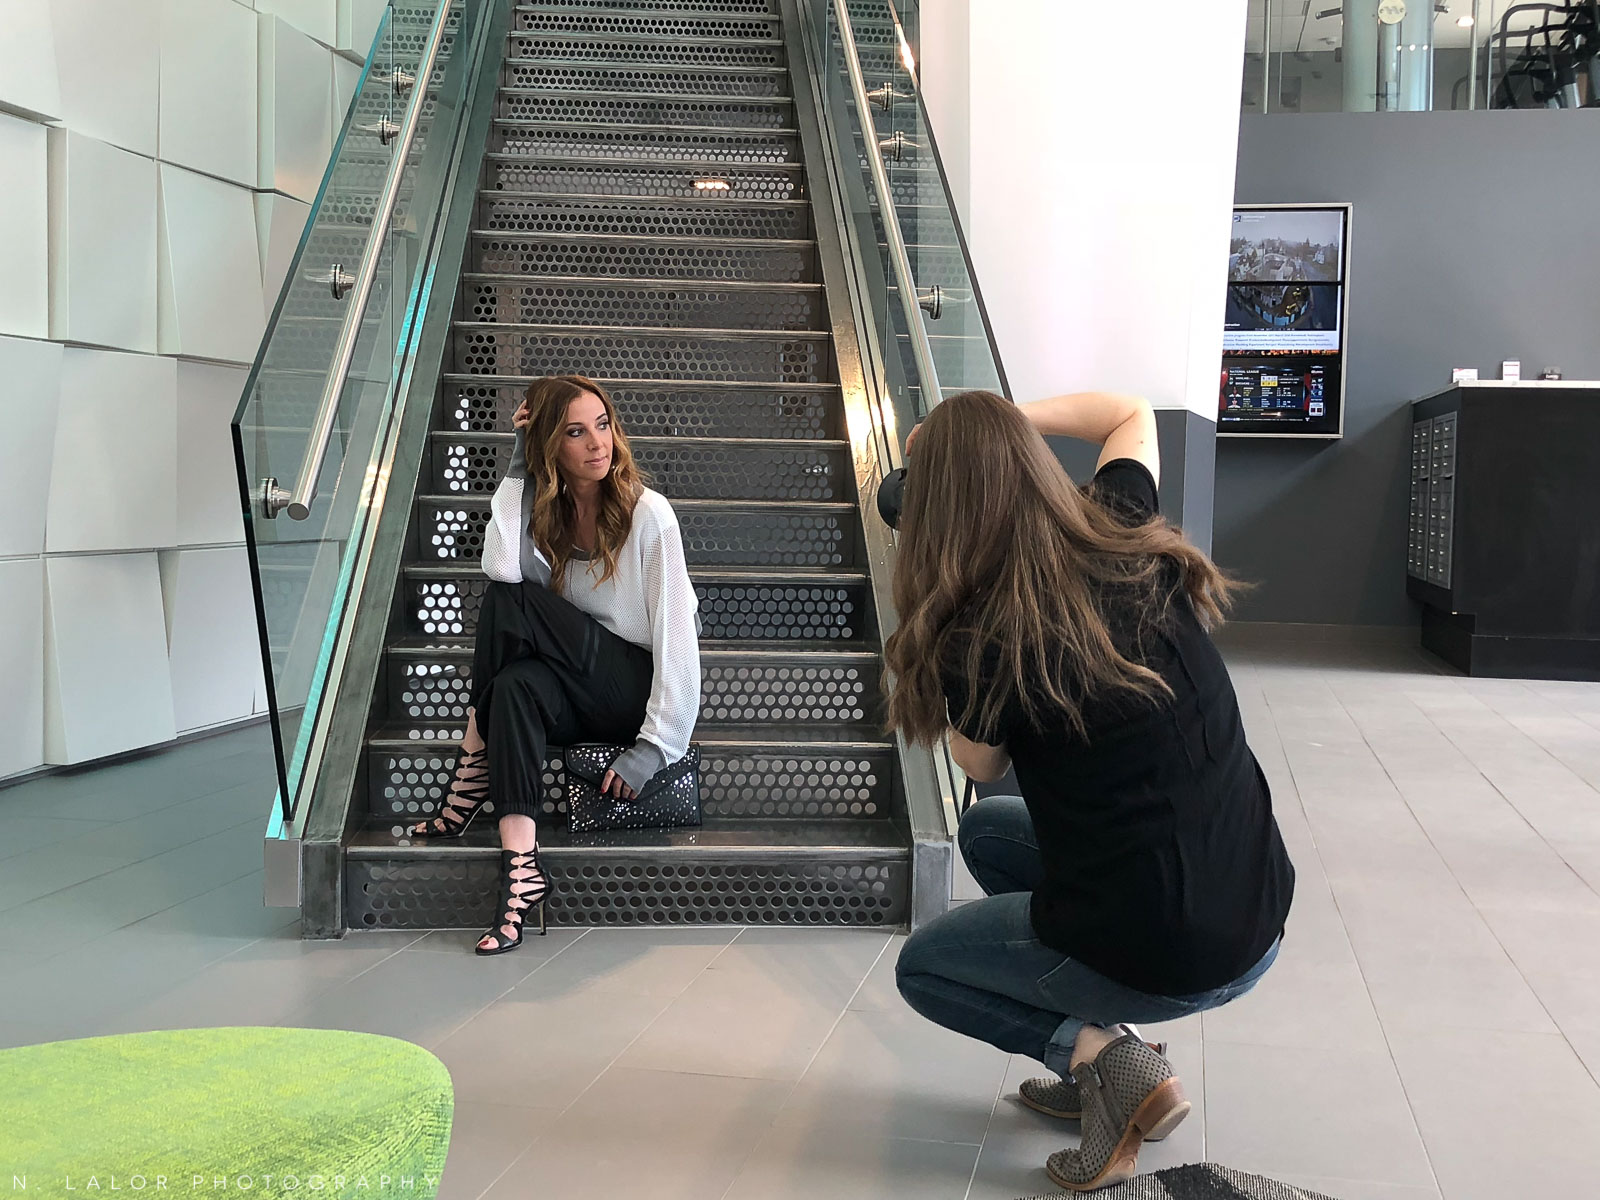 We also loved the staircase! We shot each outfit in 1-2 spots and this was the second area we used for this sporty look.